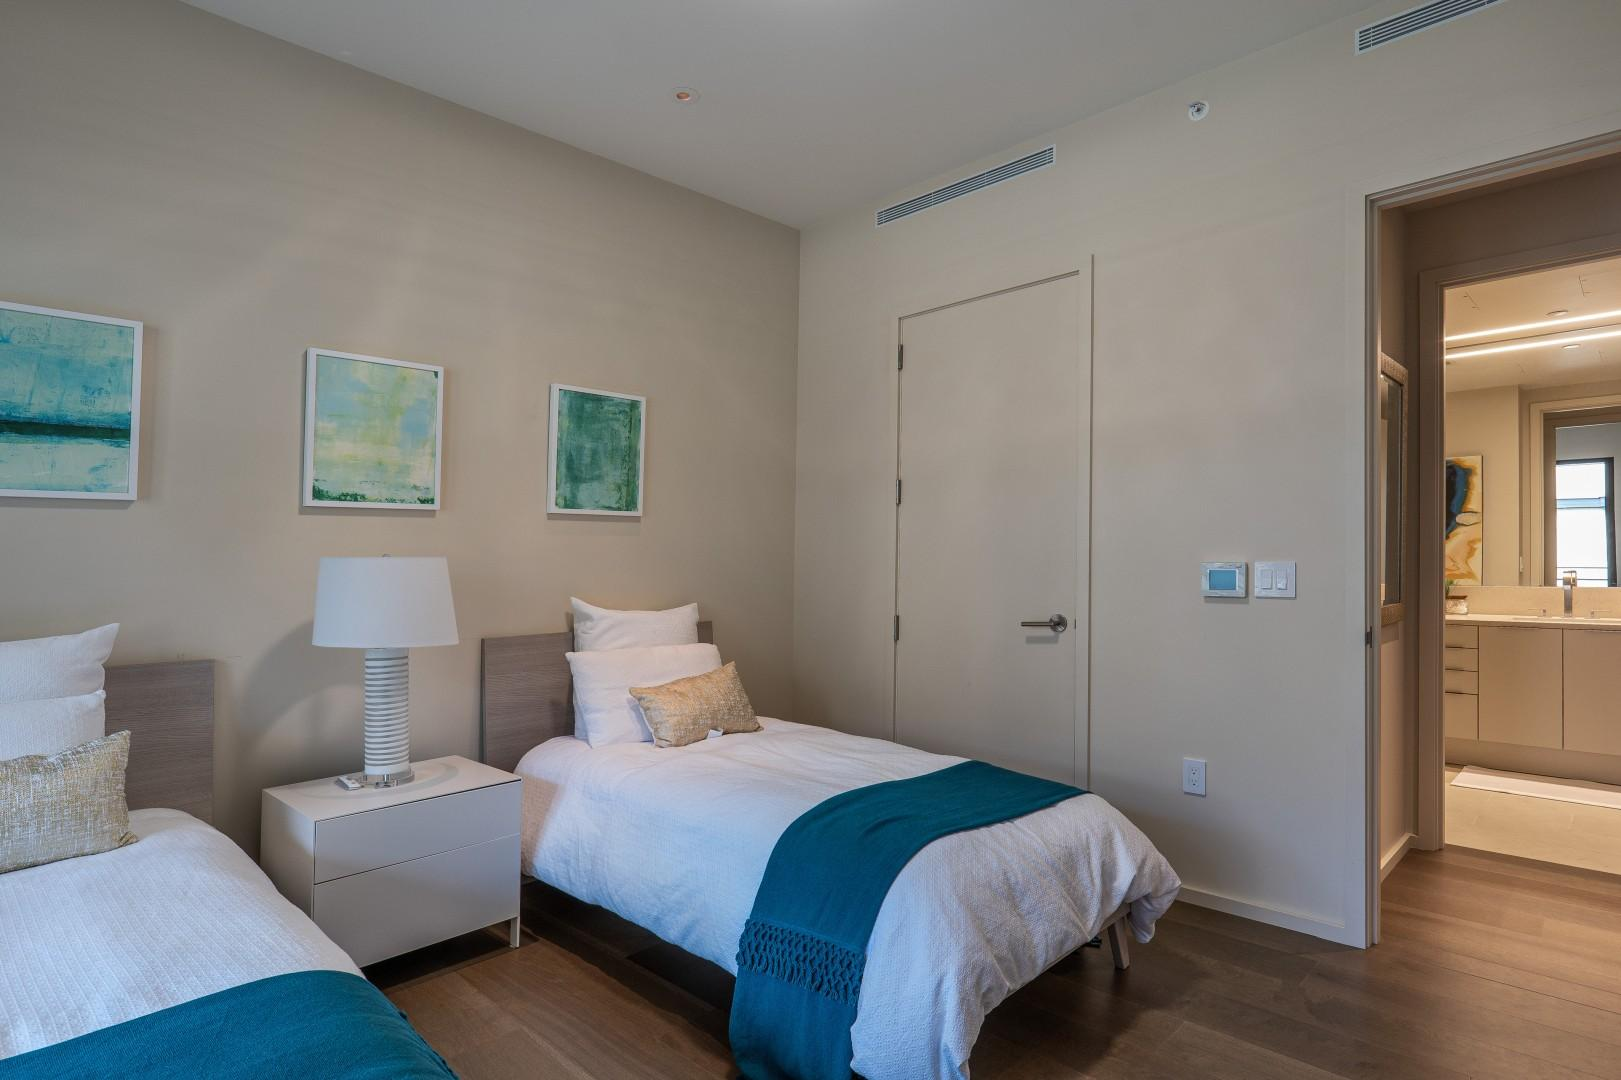 Guest Bedroom with Bathroom across the hall